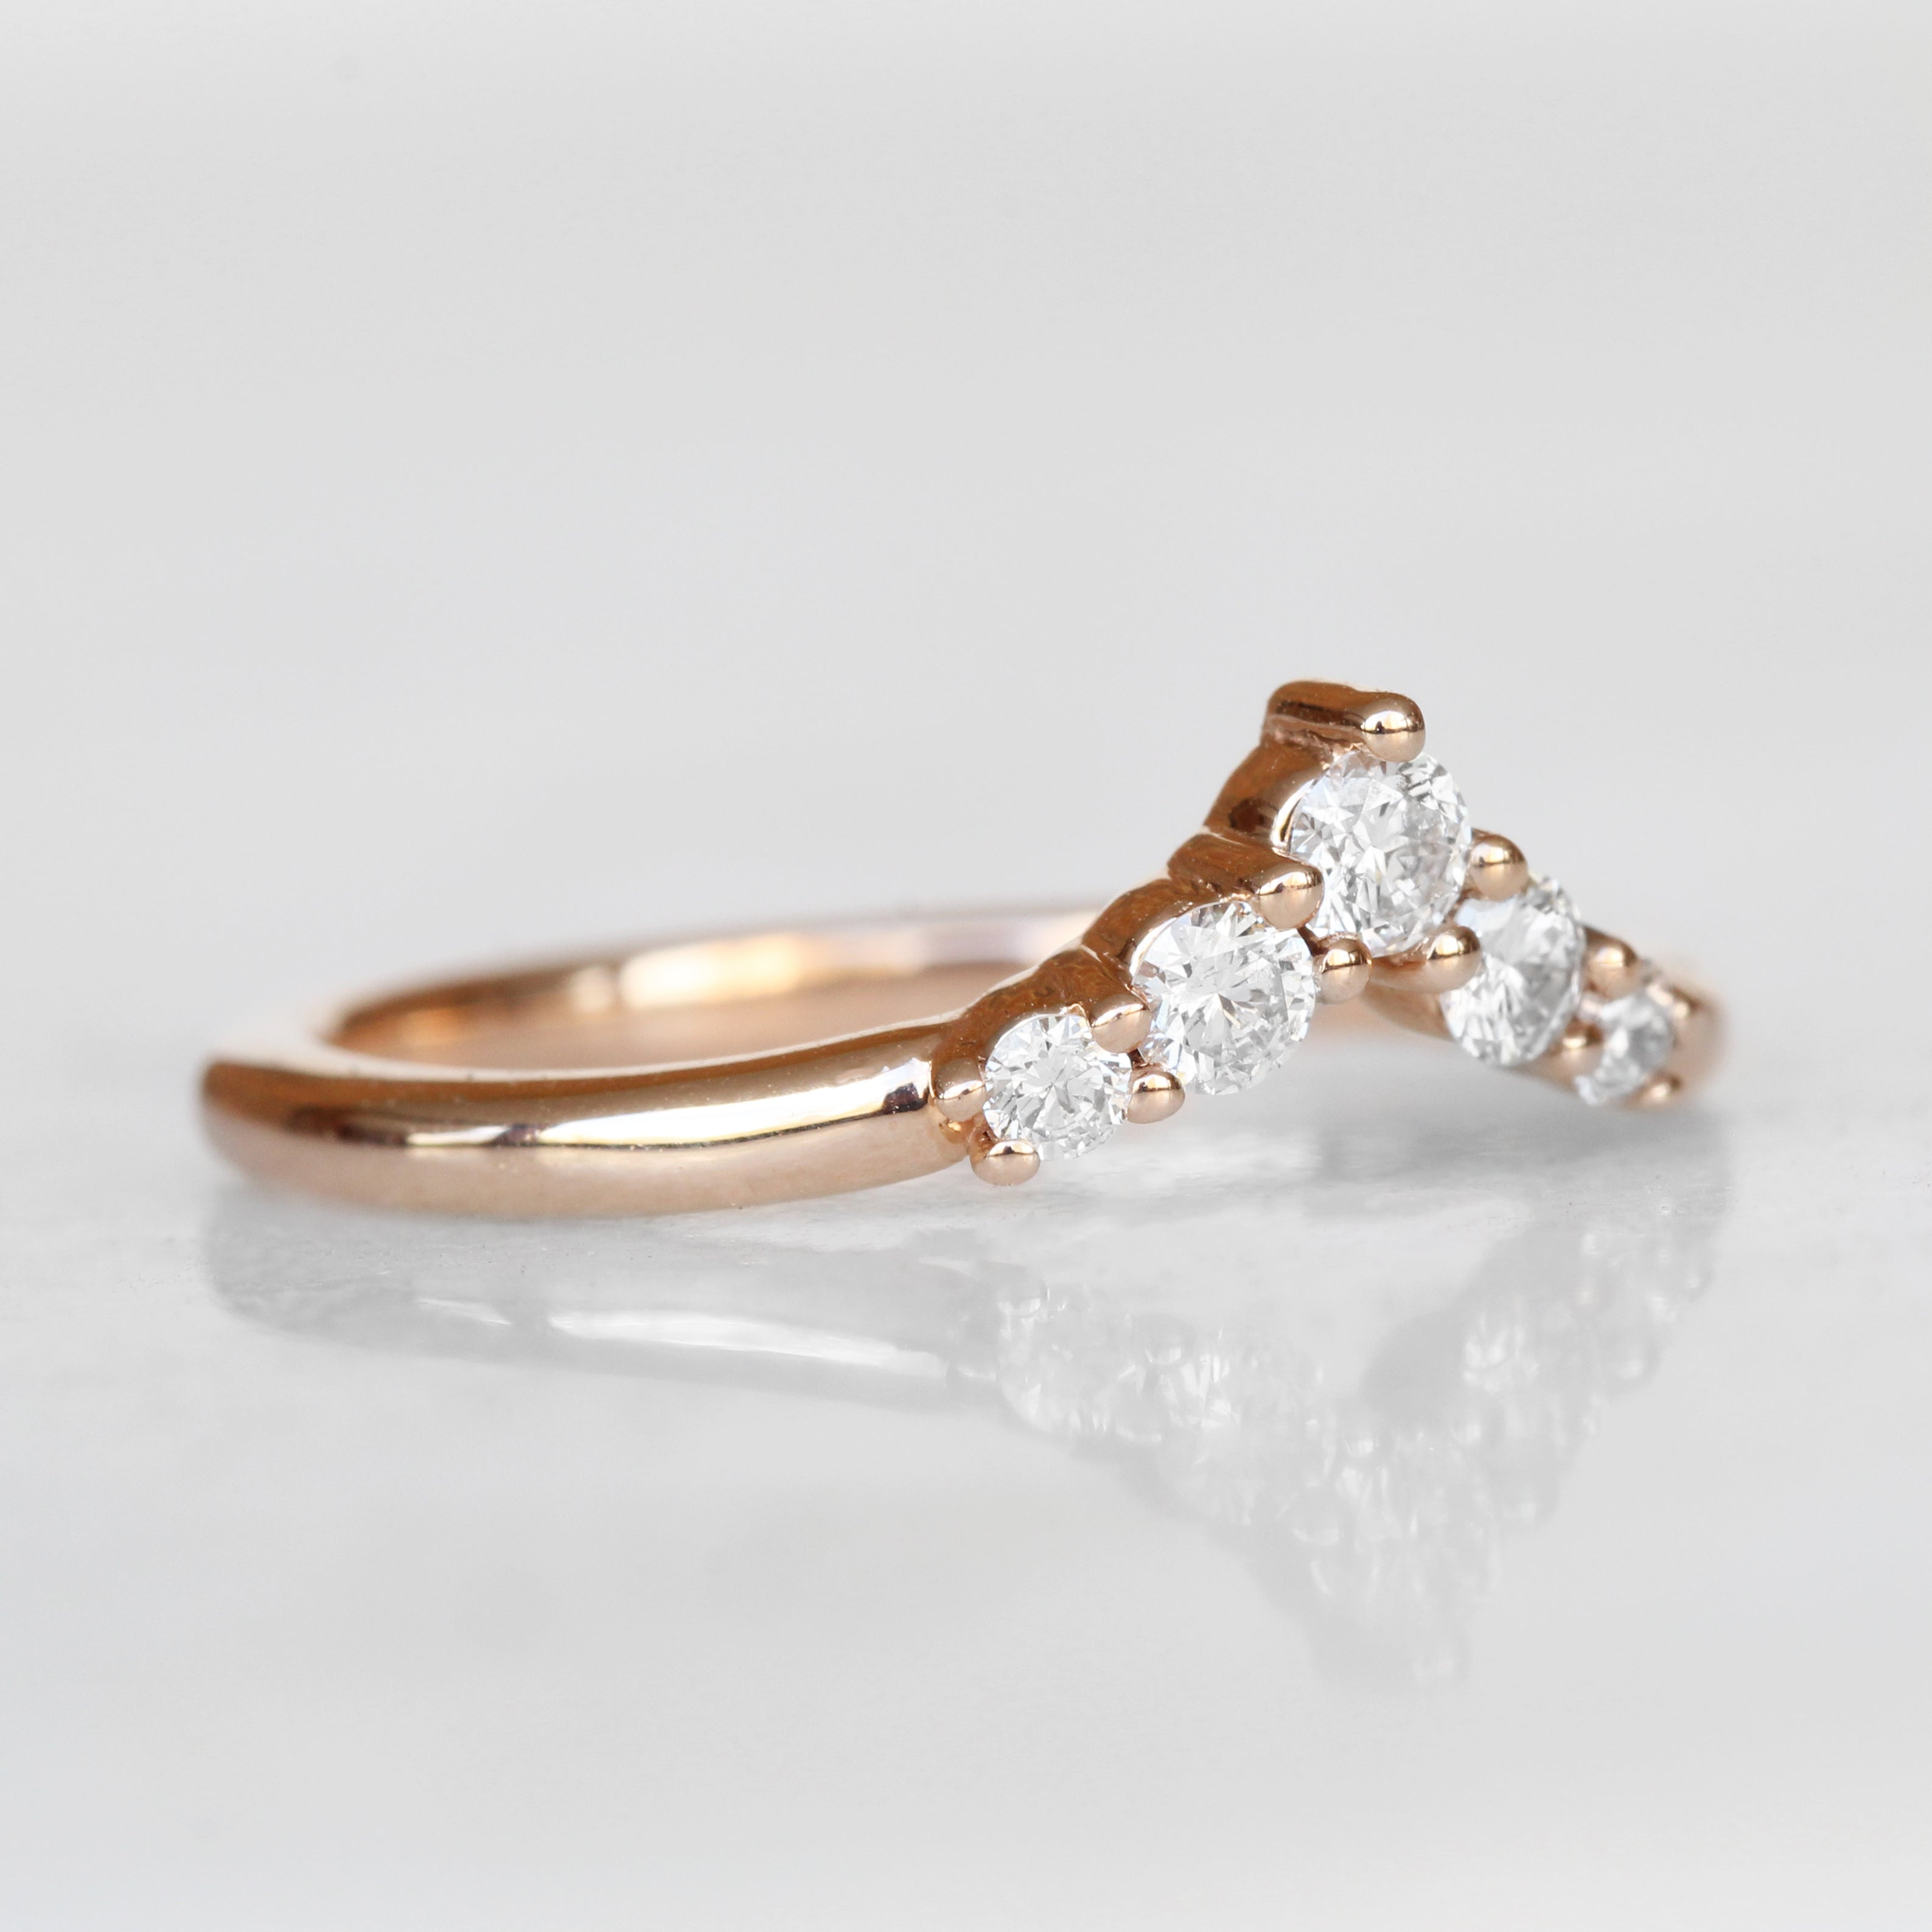 Rhiannon White Diamond Band - Contour Point V Shape Diamond Band - Gold of choice - Midwinter Co. Alternative Bridal Rings and Modern Fine Jewelry